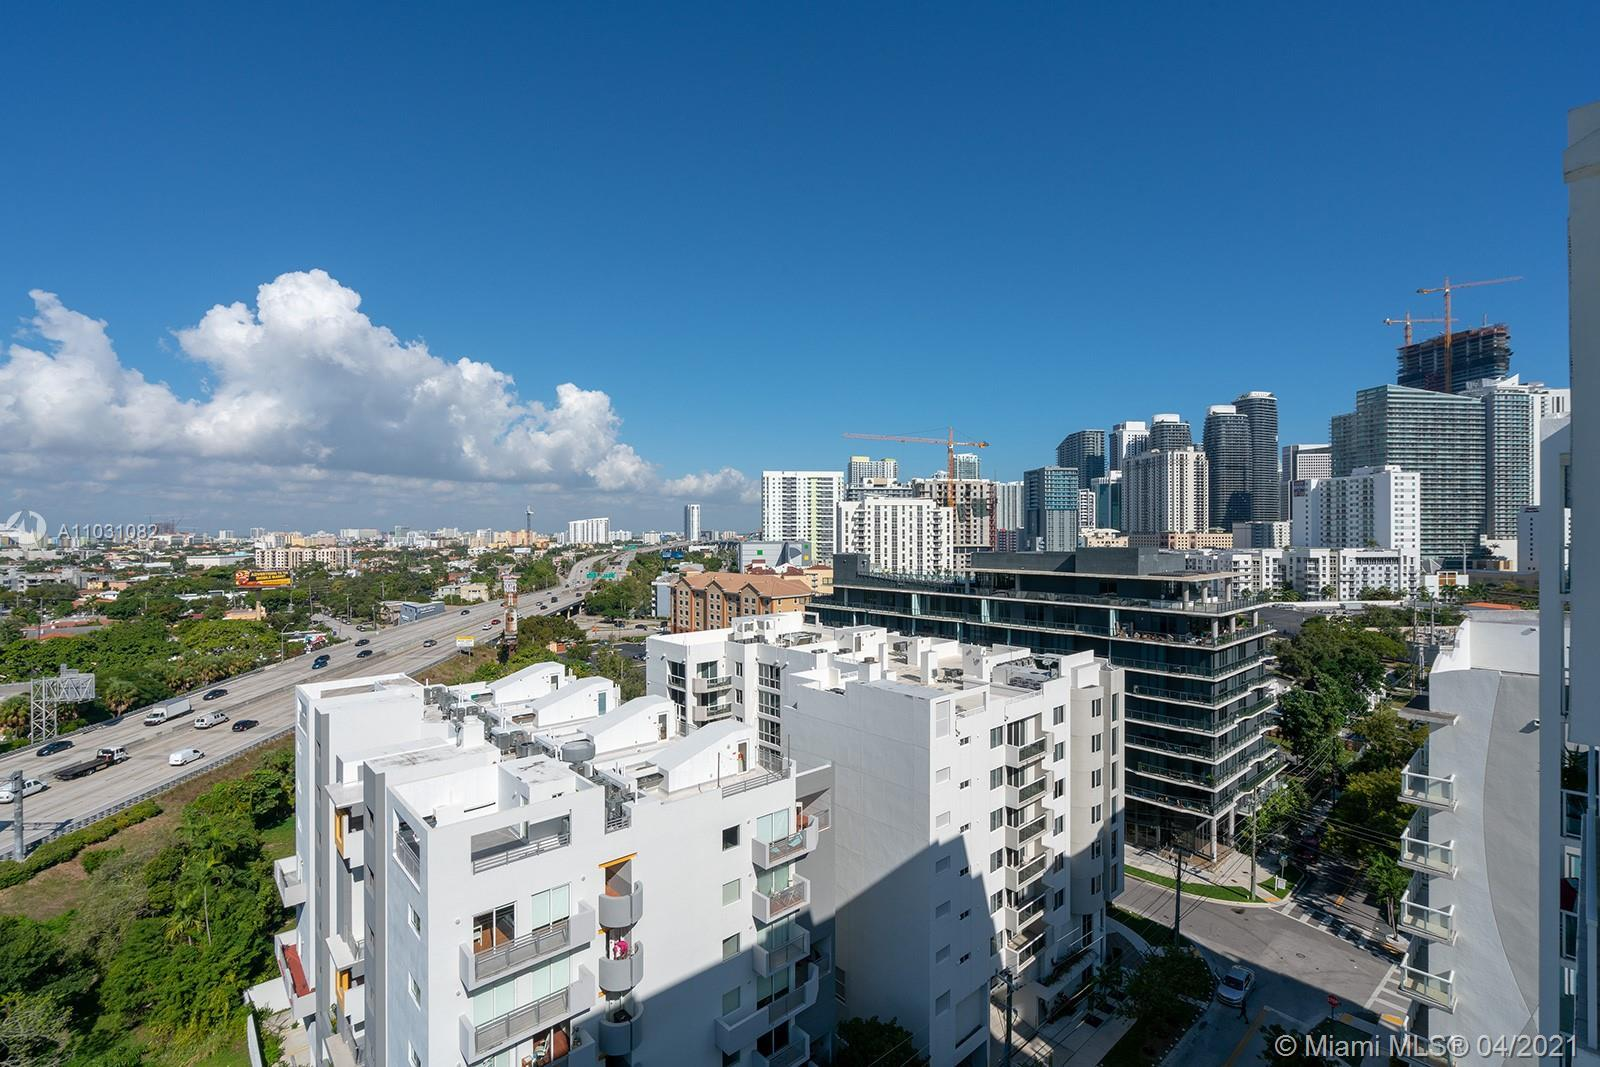 PENTHOUSE, 1 Bedroom 1 Bath Residence @ Brickell View West.